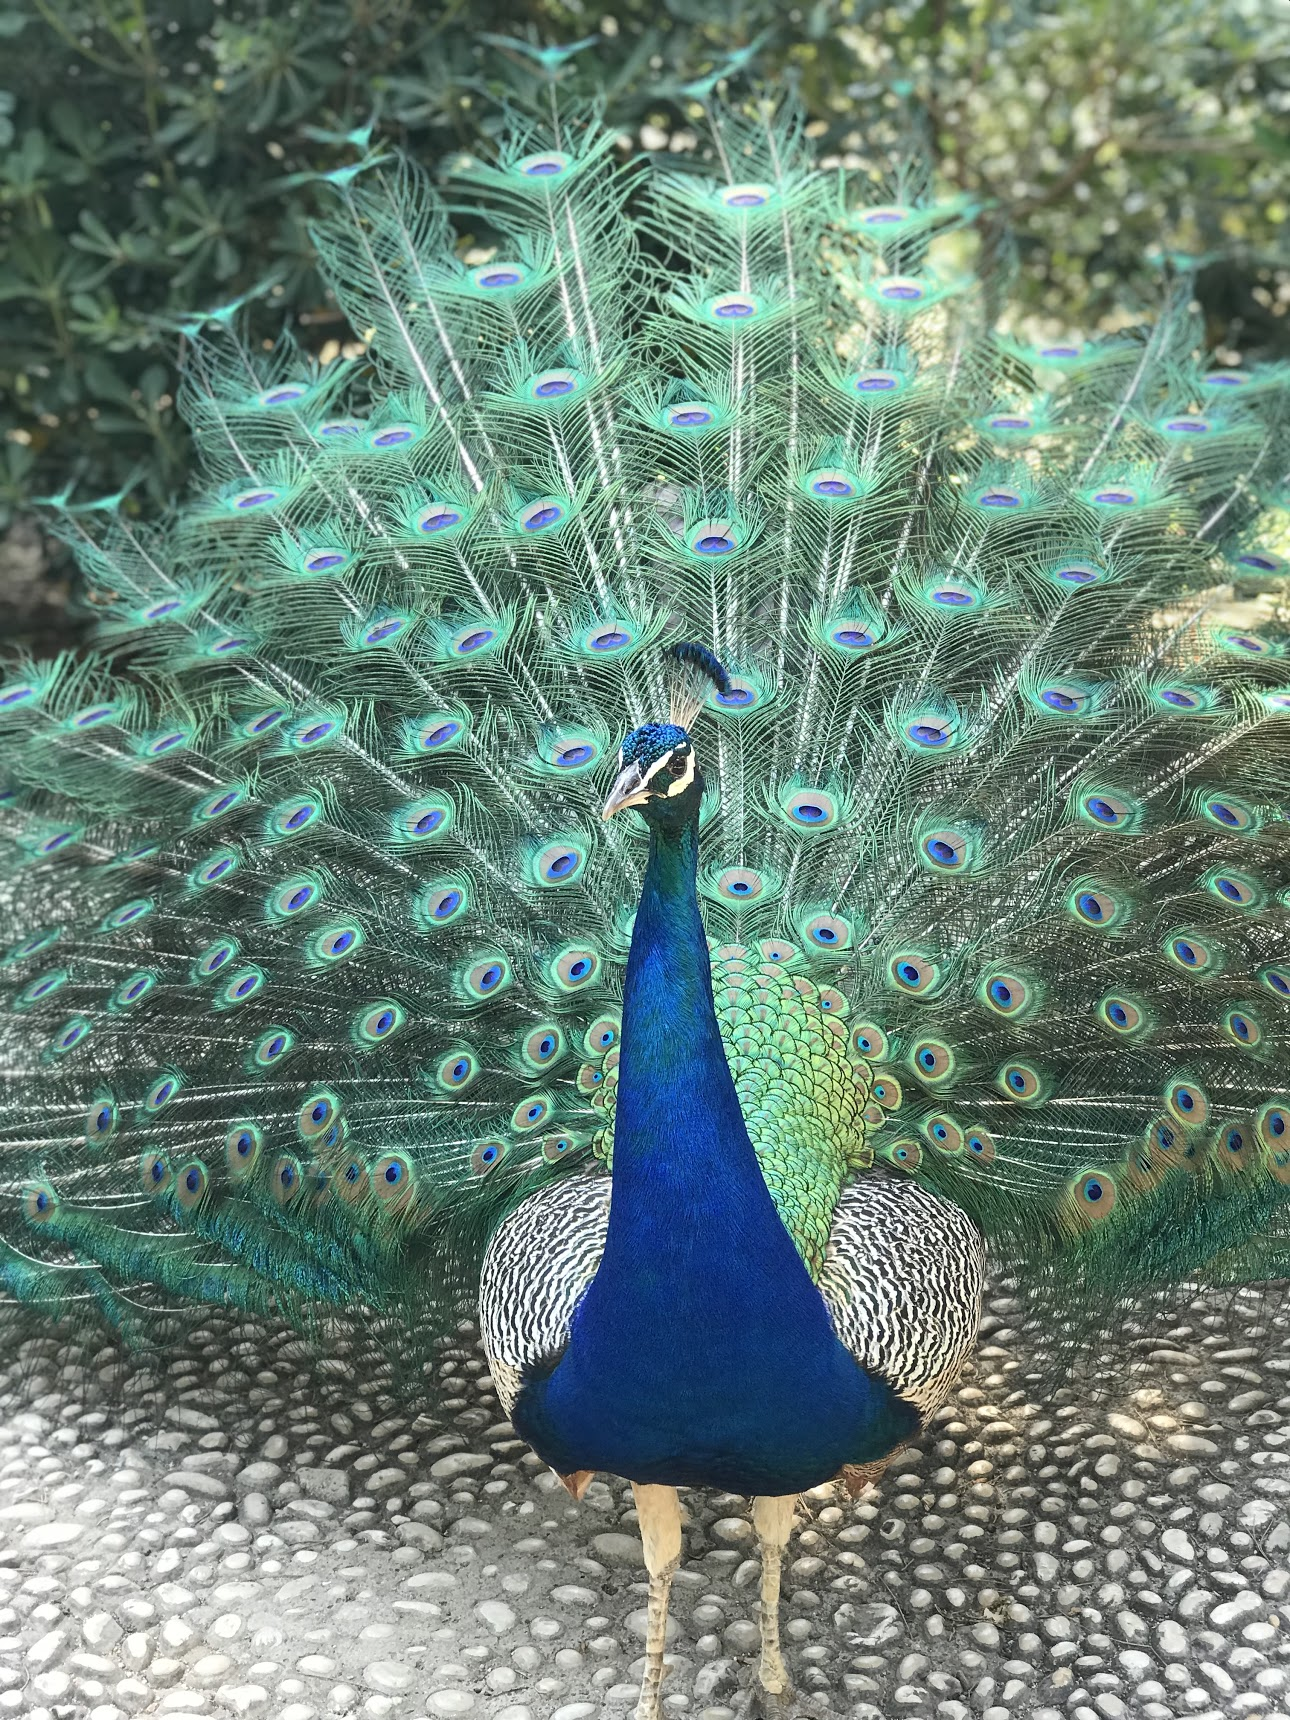 Picture of a Peacock